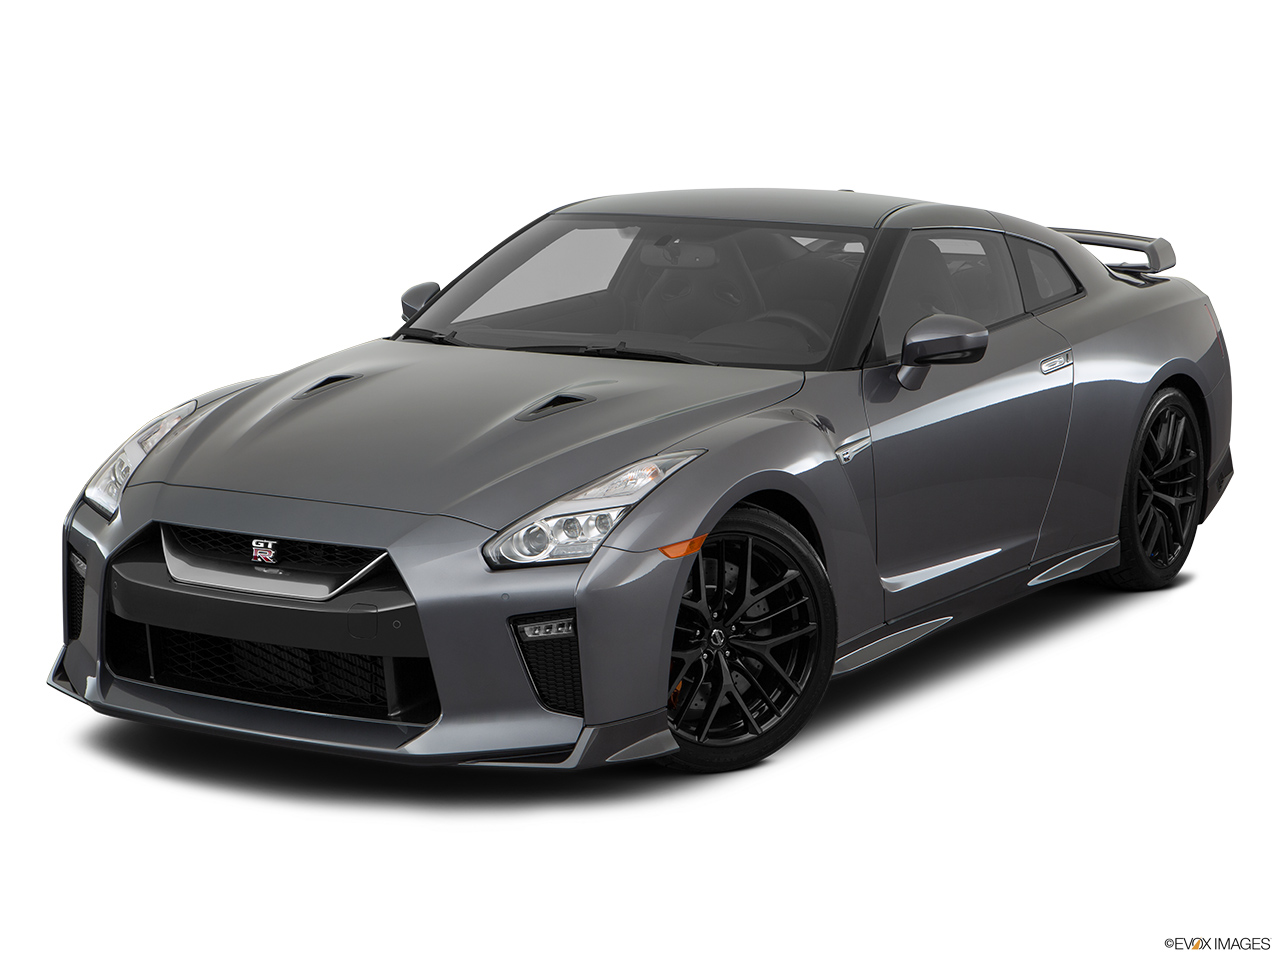 Nissan GT-R 2018 Premium Edition in Oman: New Car Prices ...